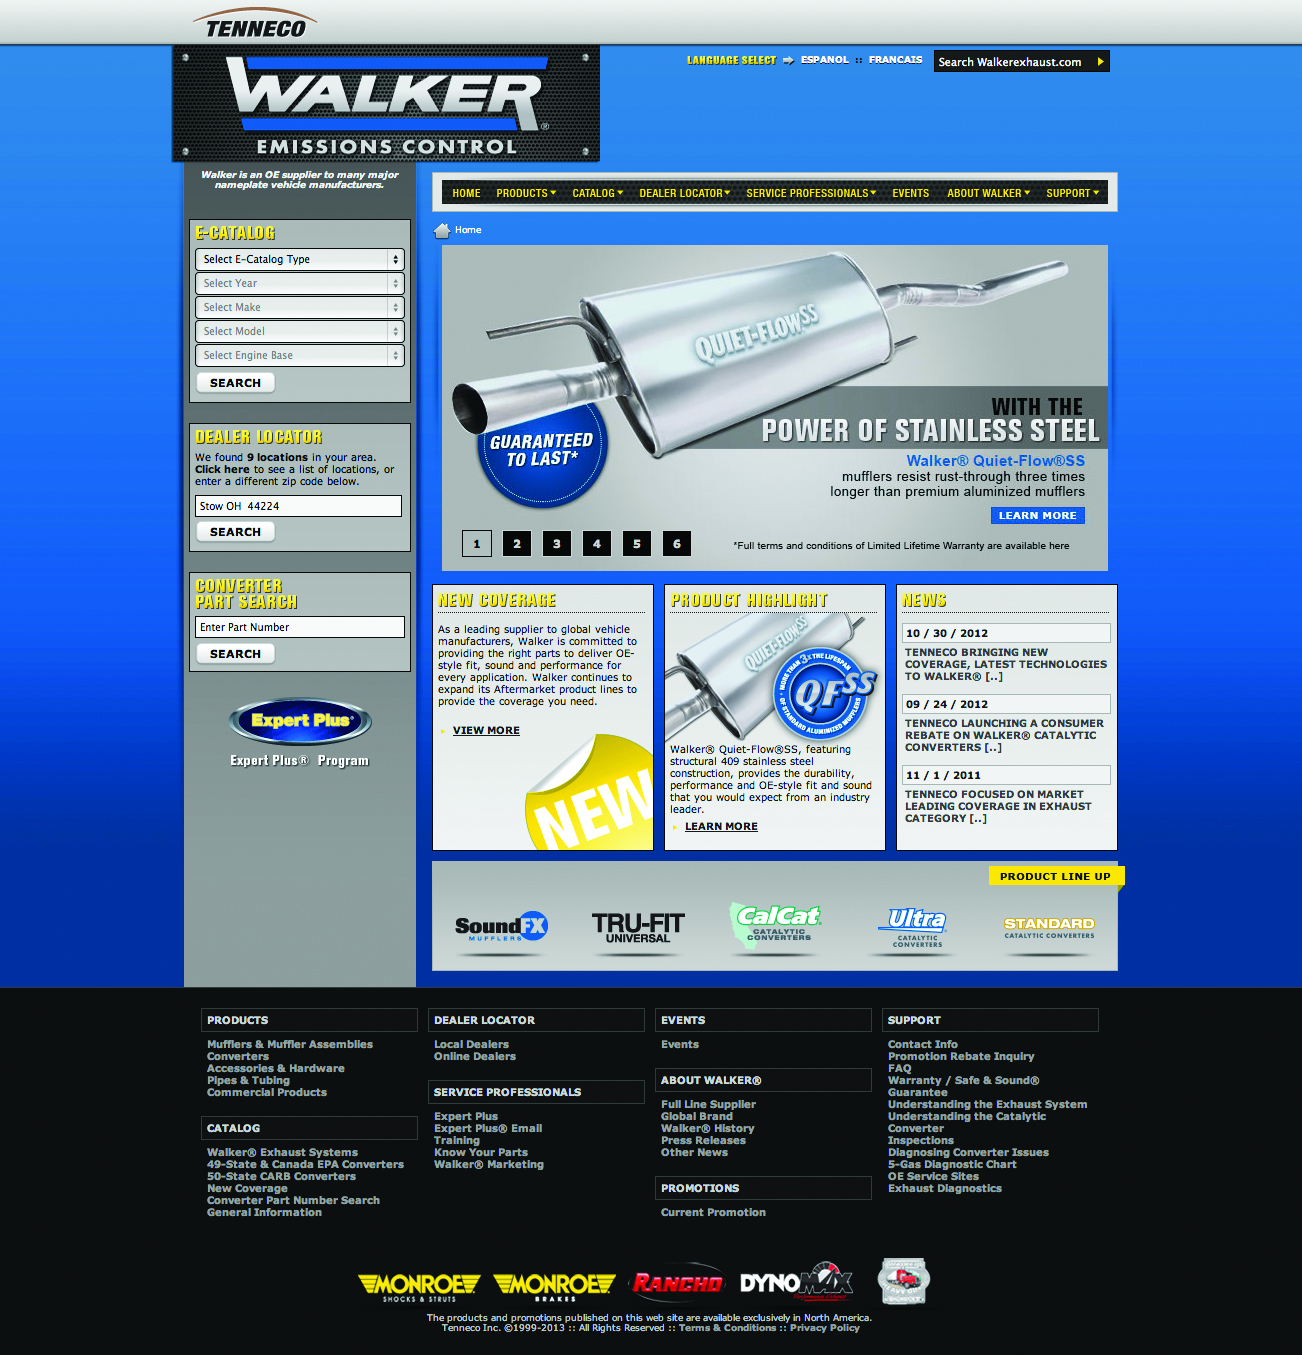 New Walker emissions website has enhanced functionality, content